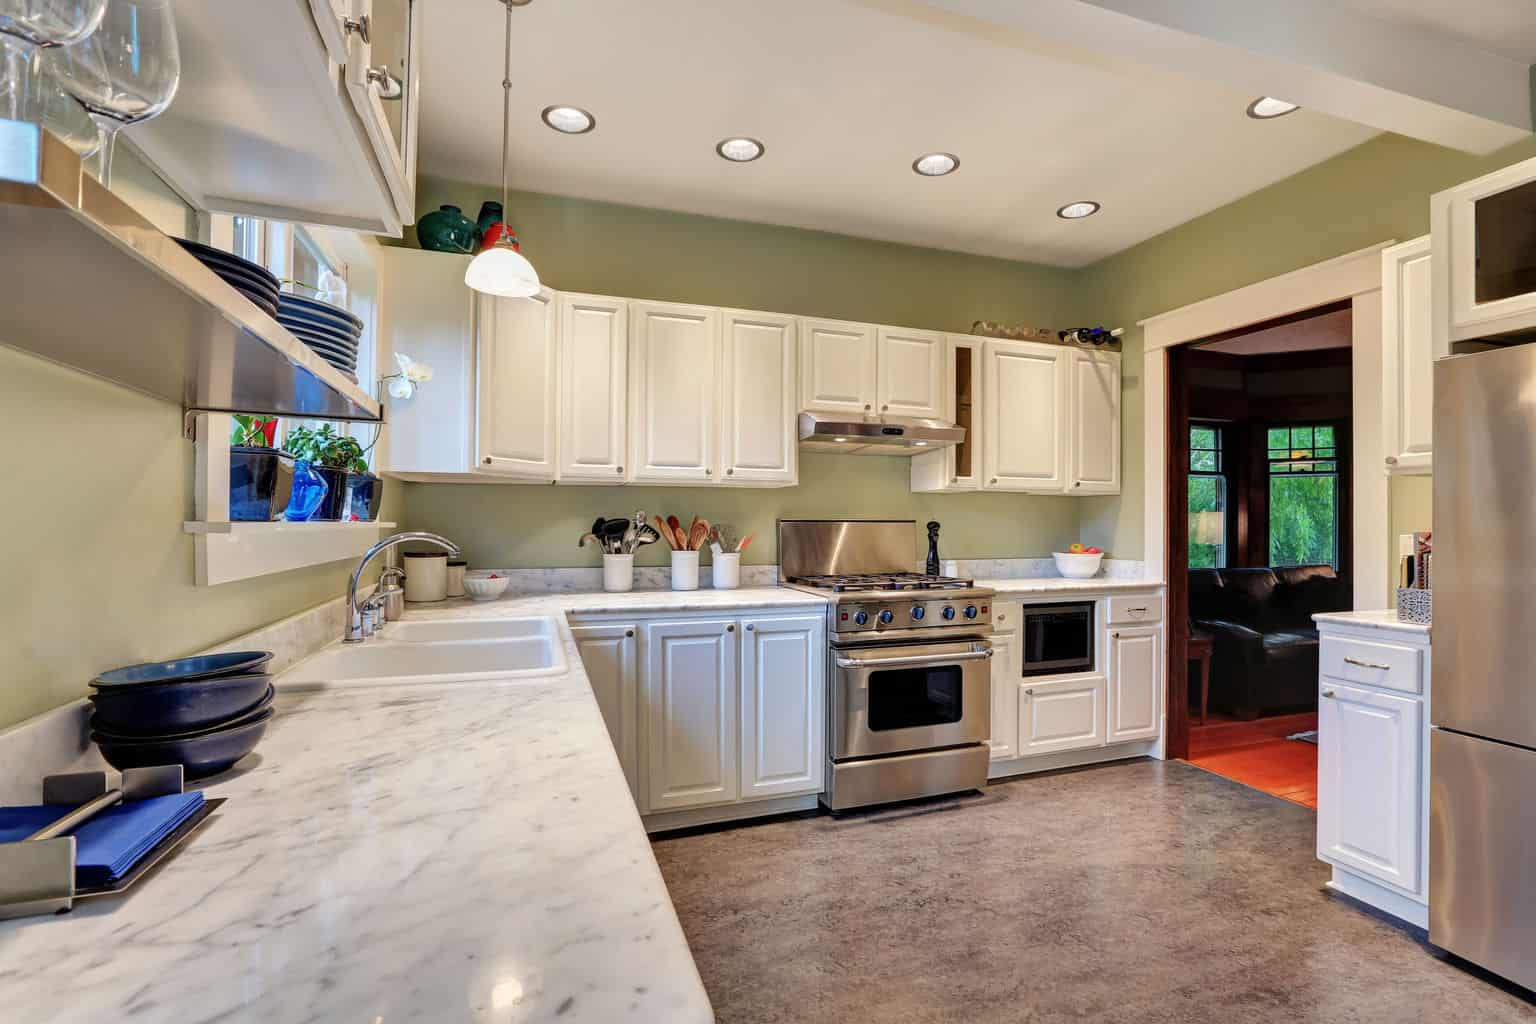 Kitchen Flooring Options Pros And Cons Best Ideas About Linoleum Kitchen Floors On Theflooringlady